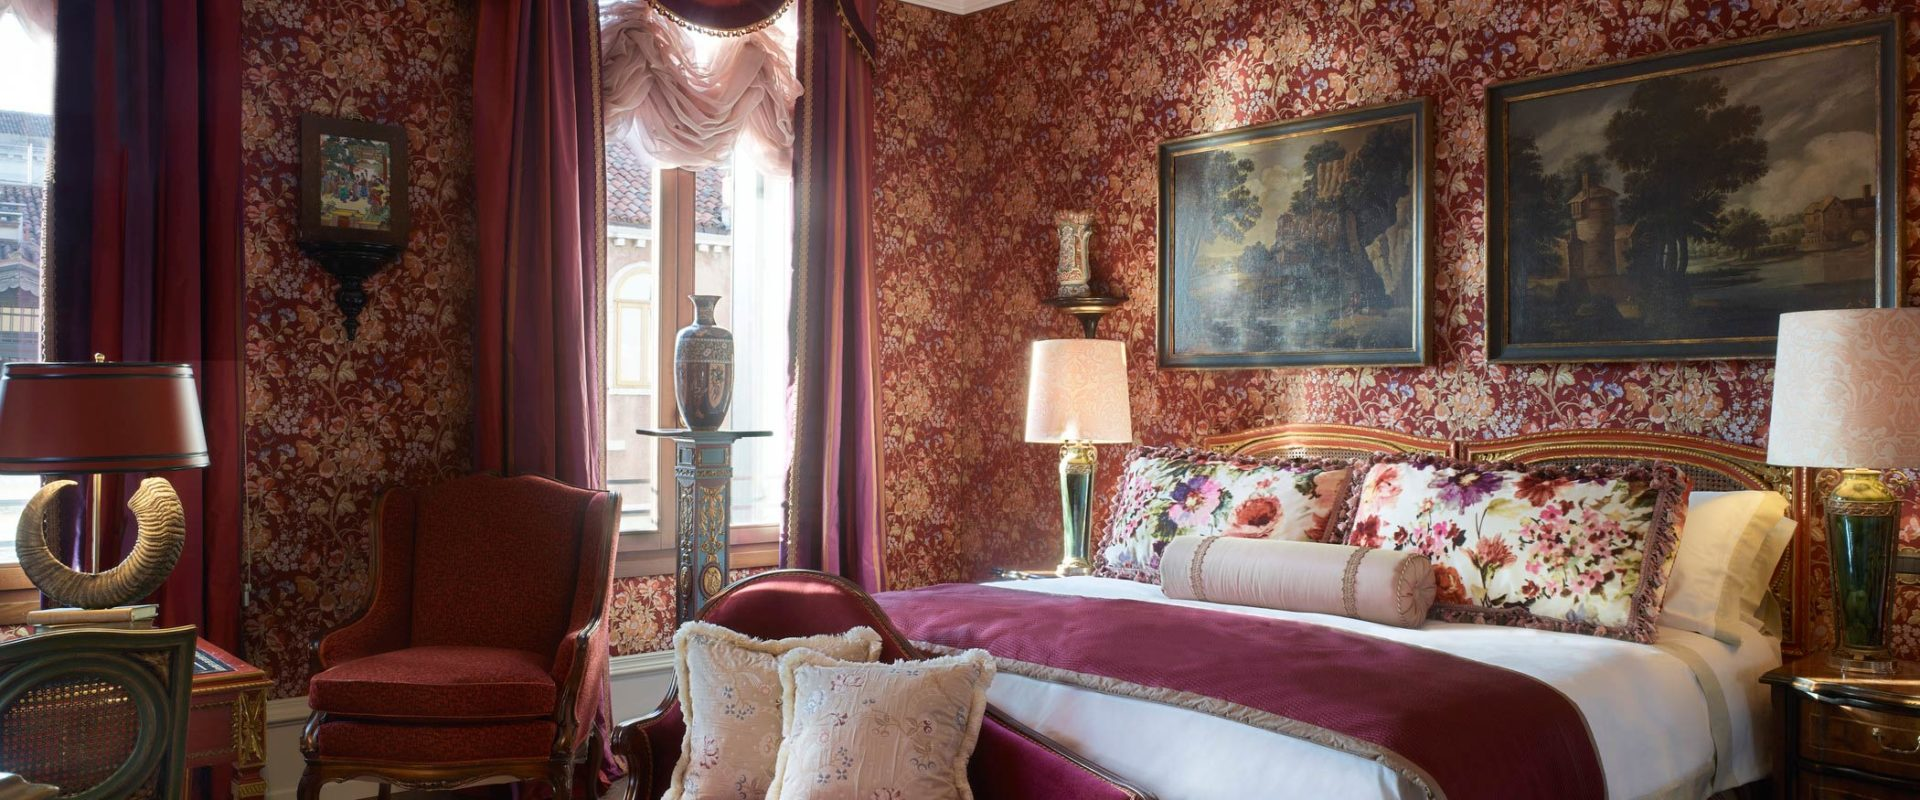 The-Griitti-Palace-Venice-Ruskin-Patron-Grand-Canal-Suite